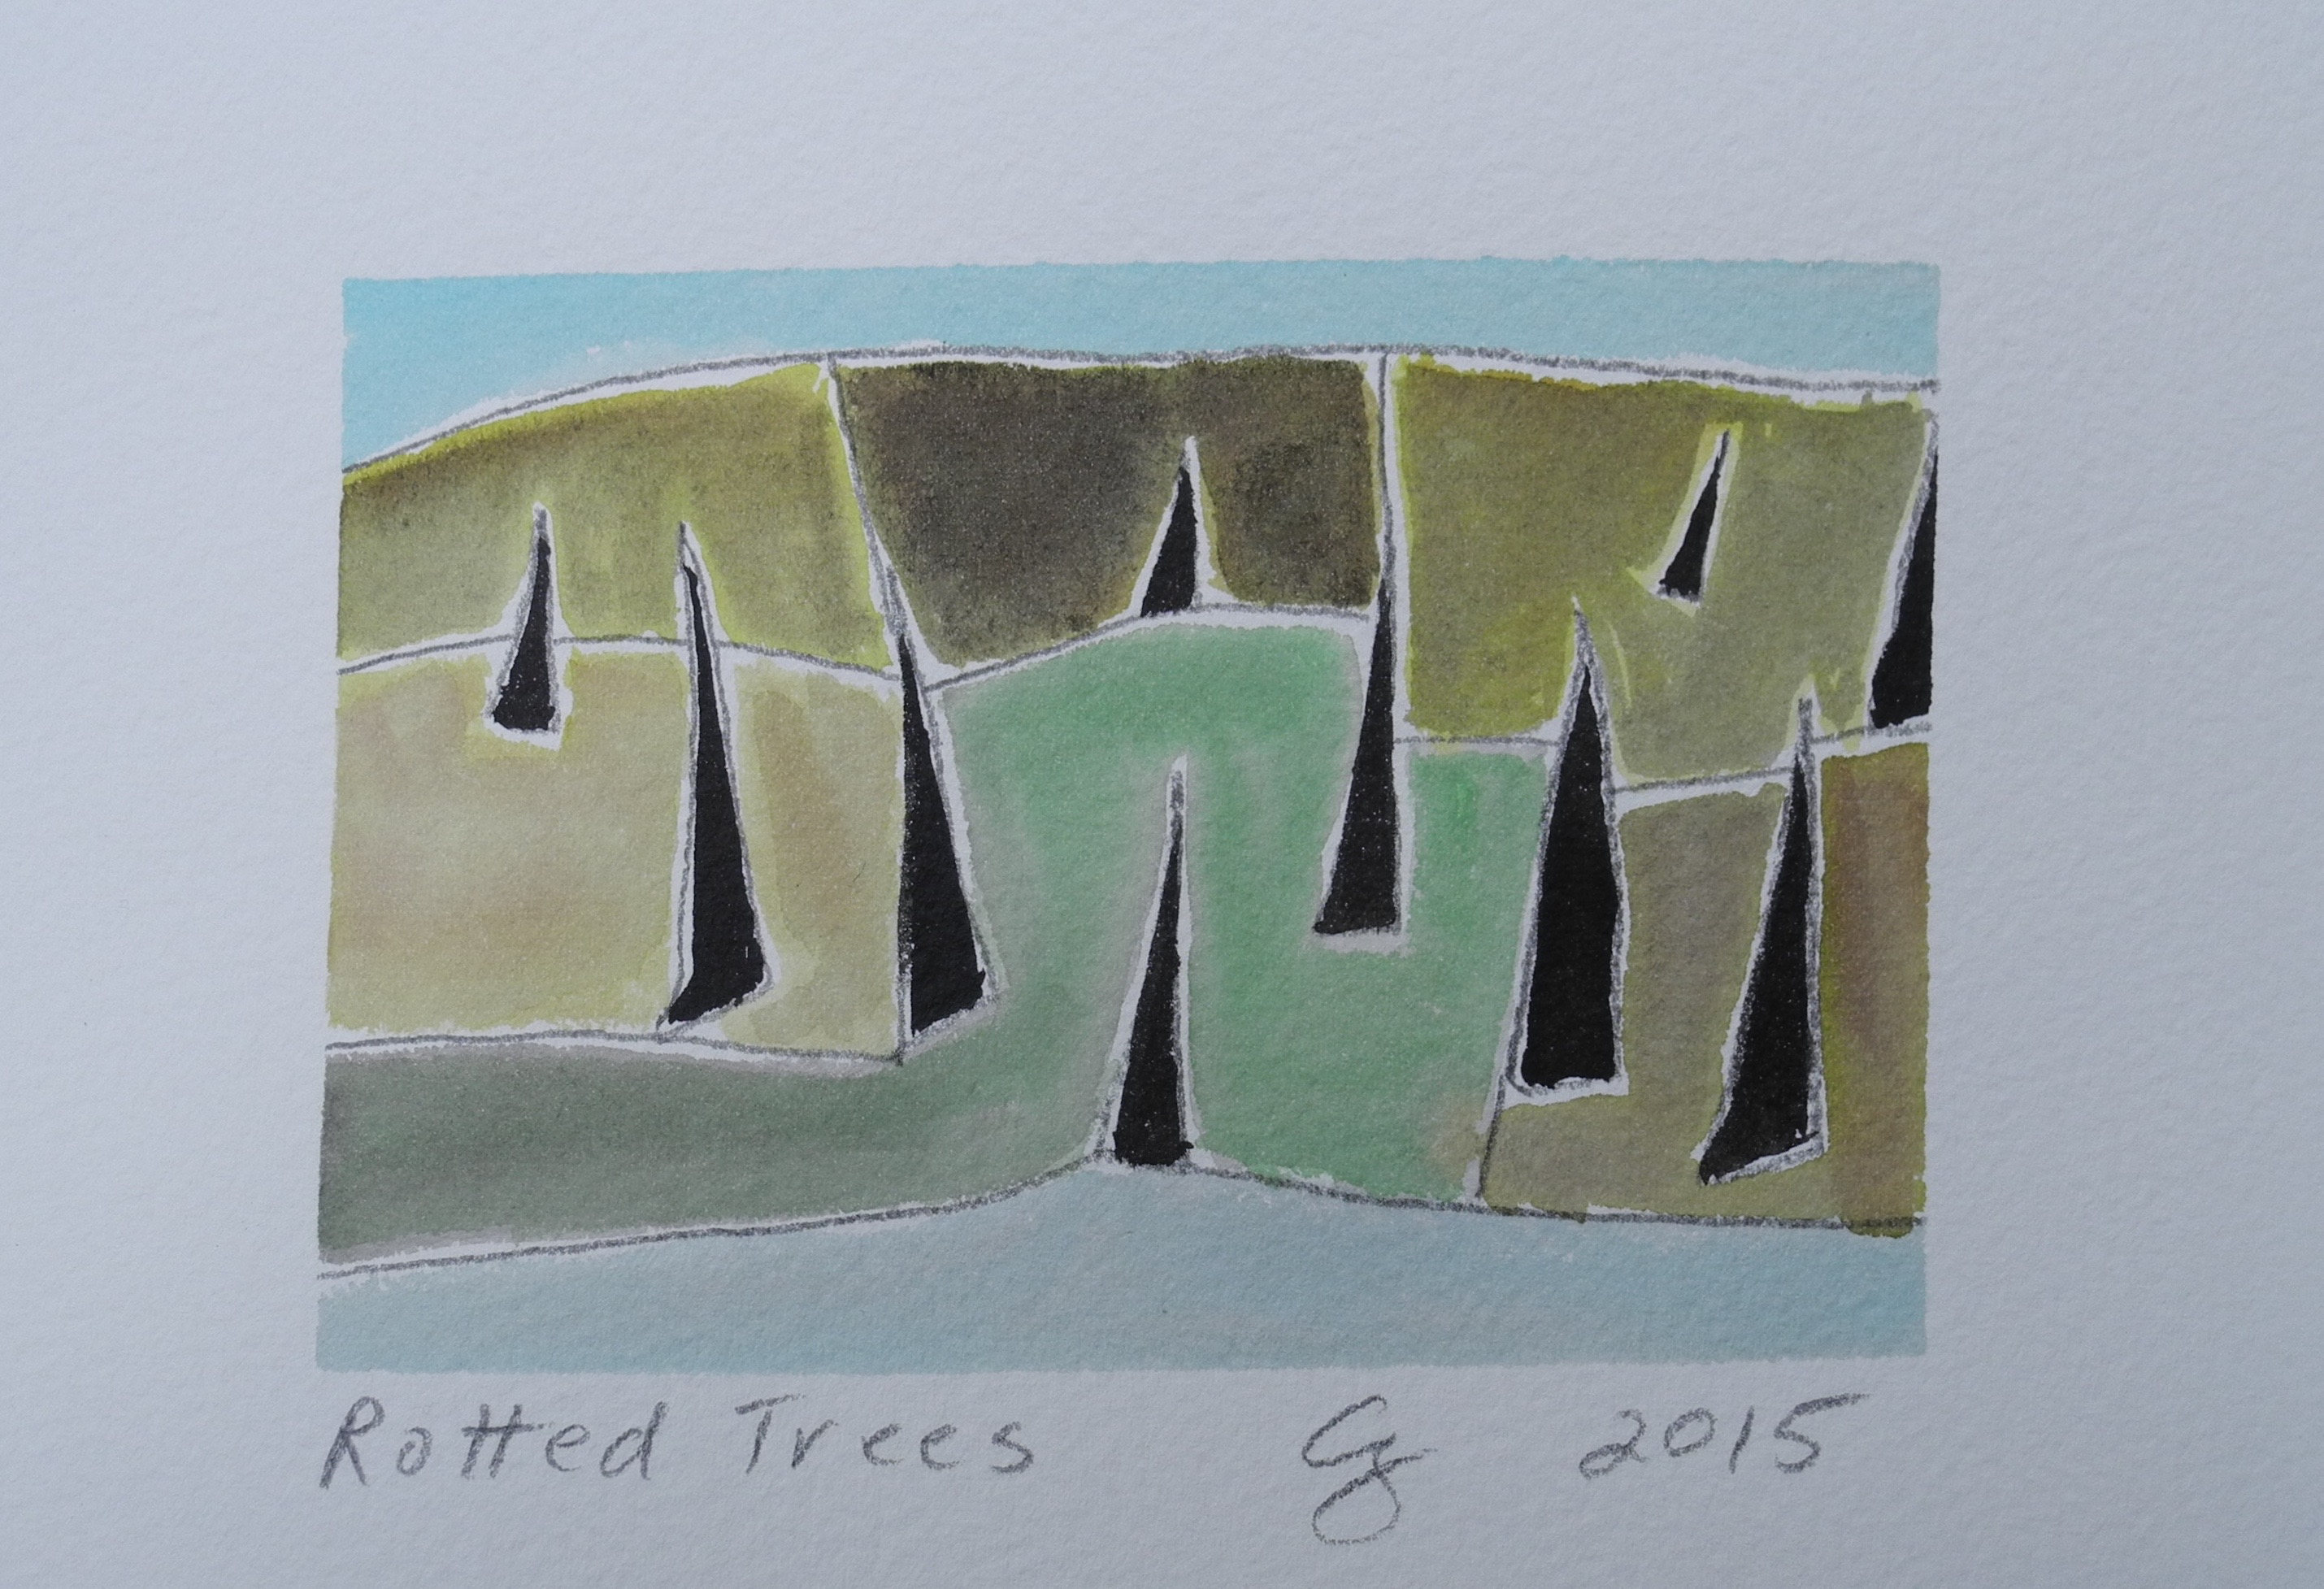 Rotted Trees